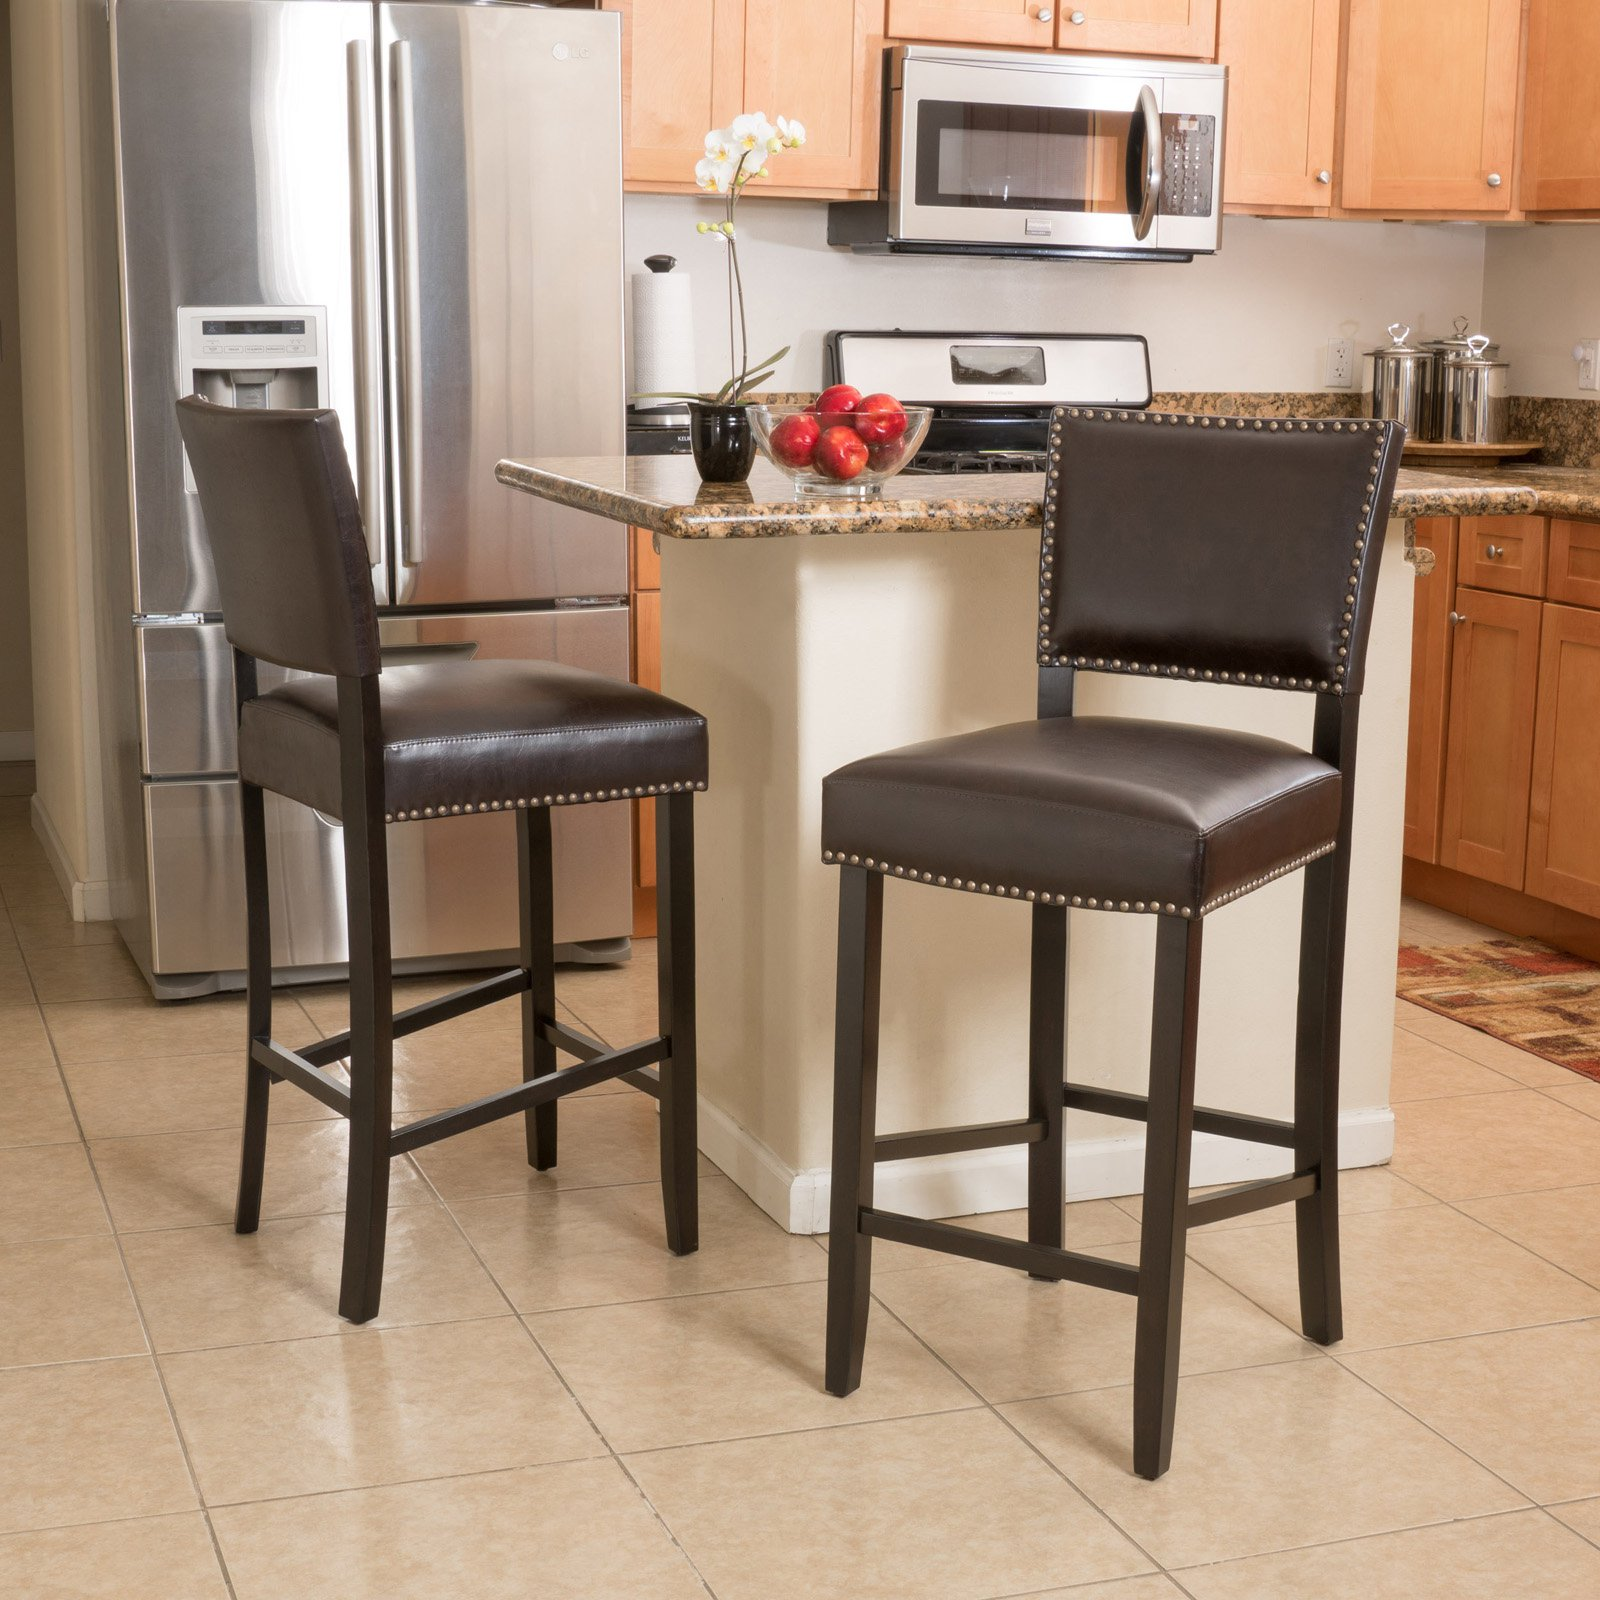 Cleveland Bar Height Stool with Cushion - Set of 2